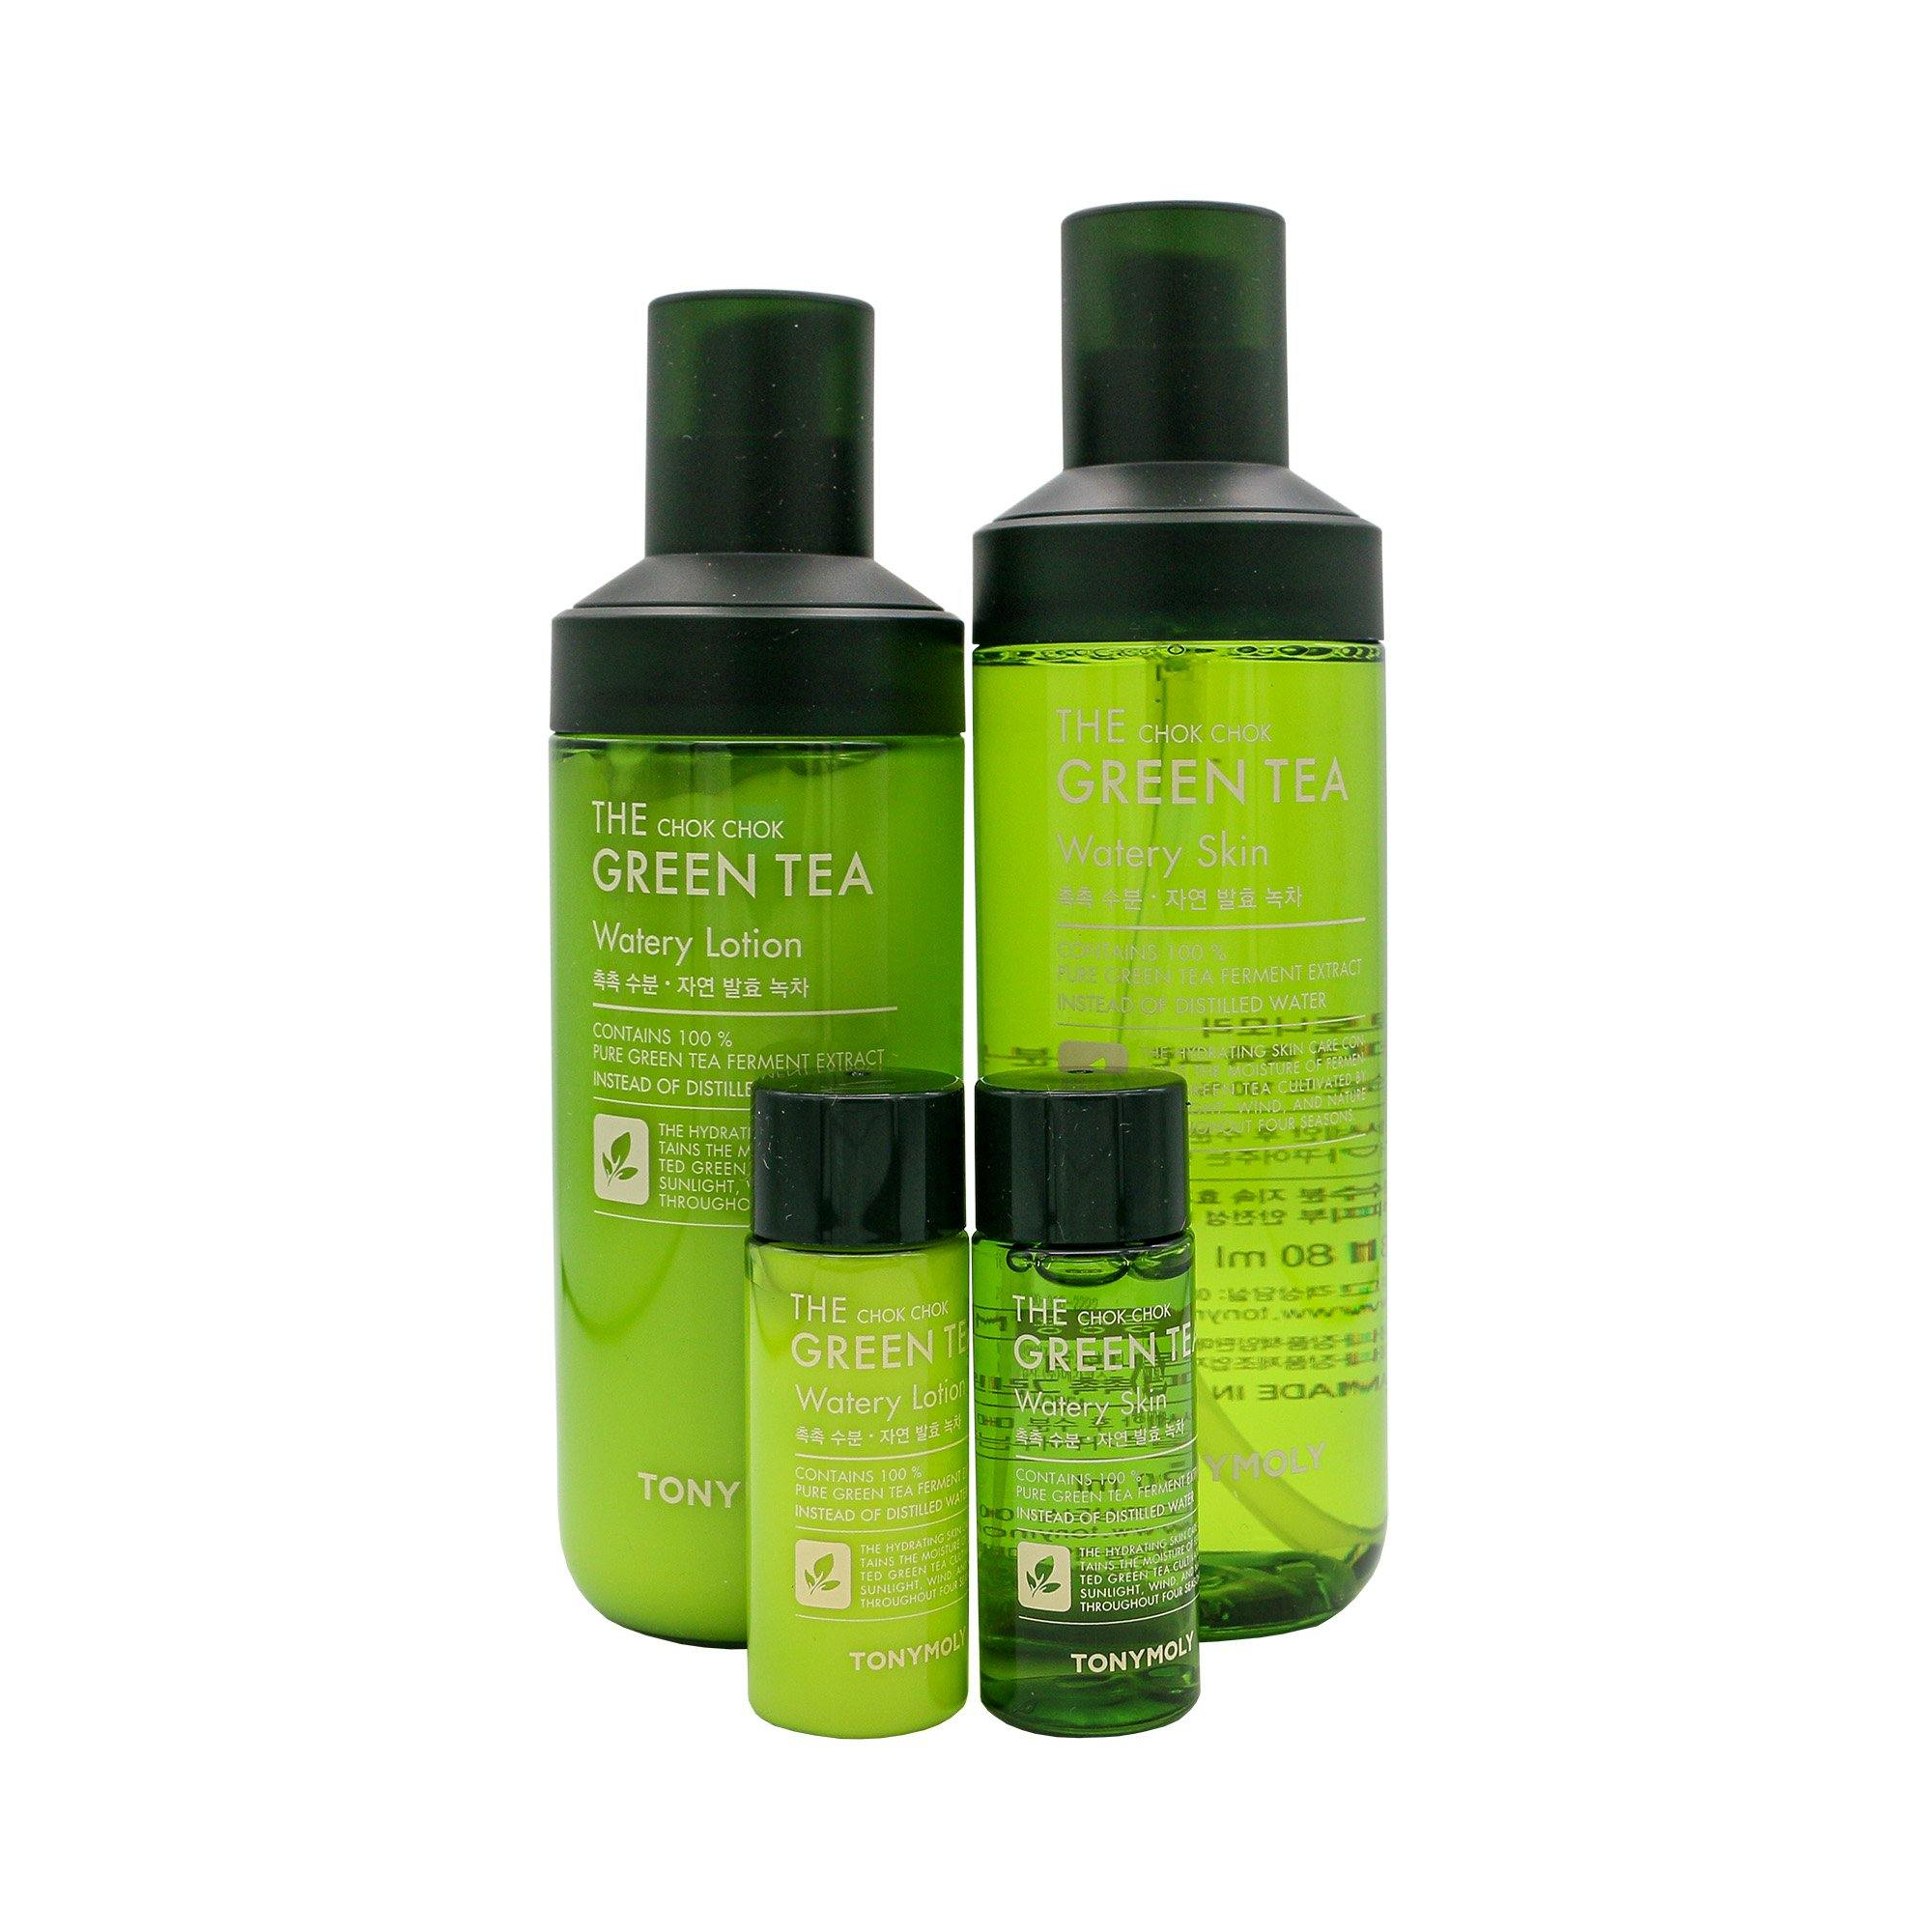 TONYMOLY The Chok Chok Green Tea Watery Skin Care Set - TONYMOLY OFFICIAL